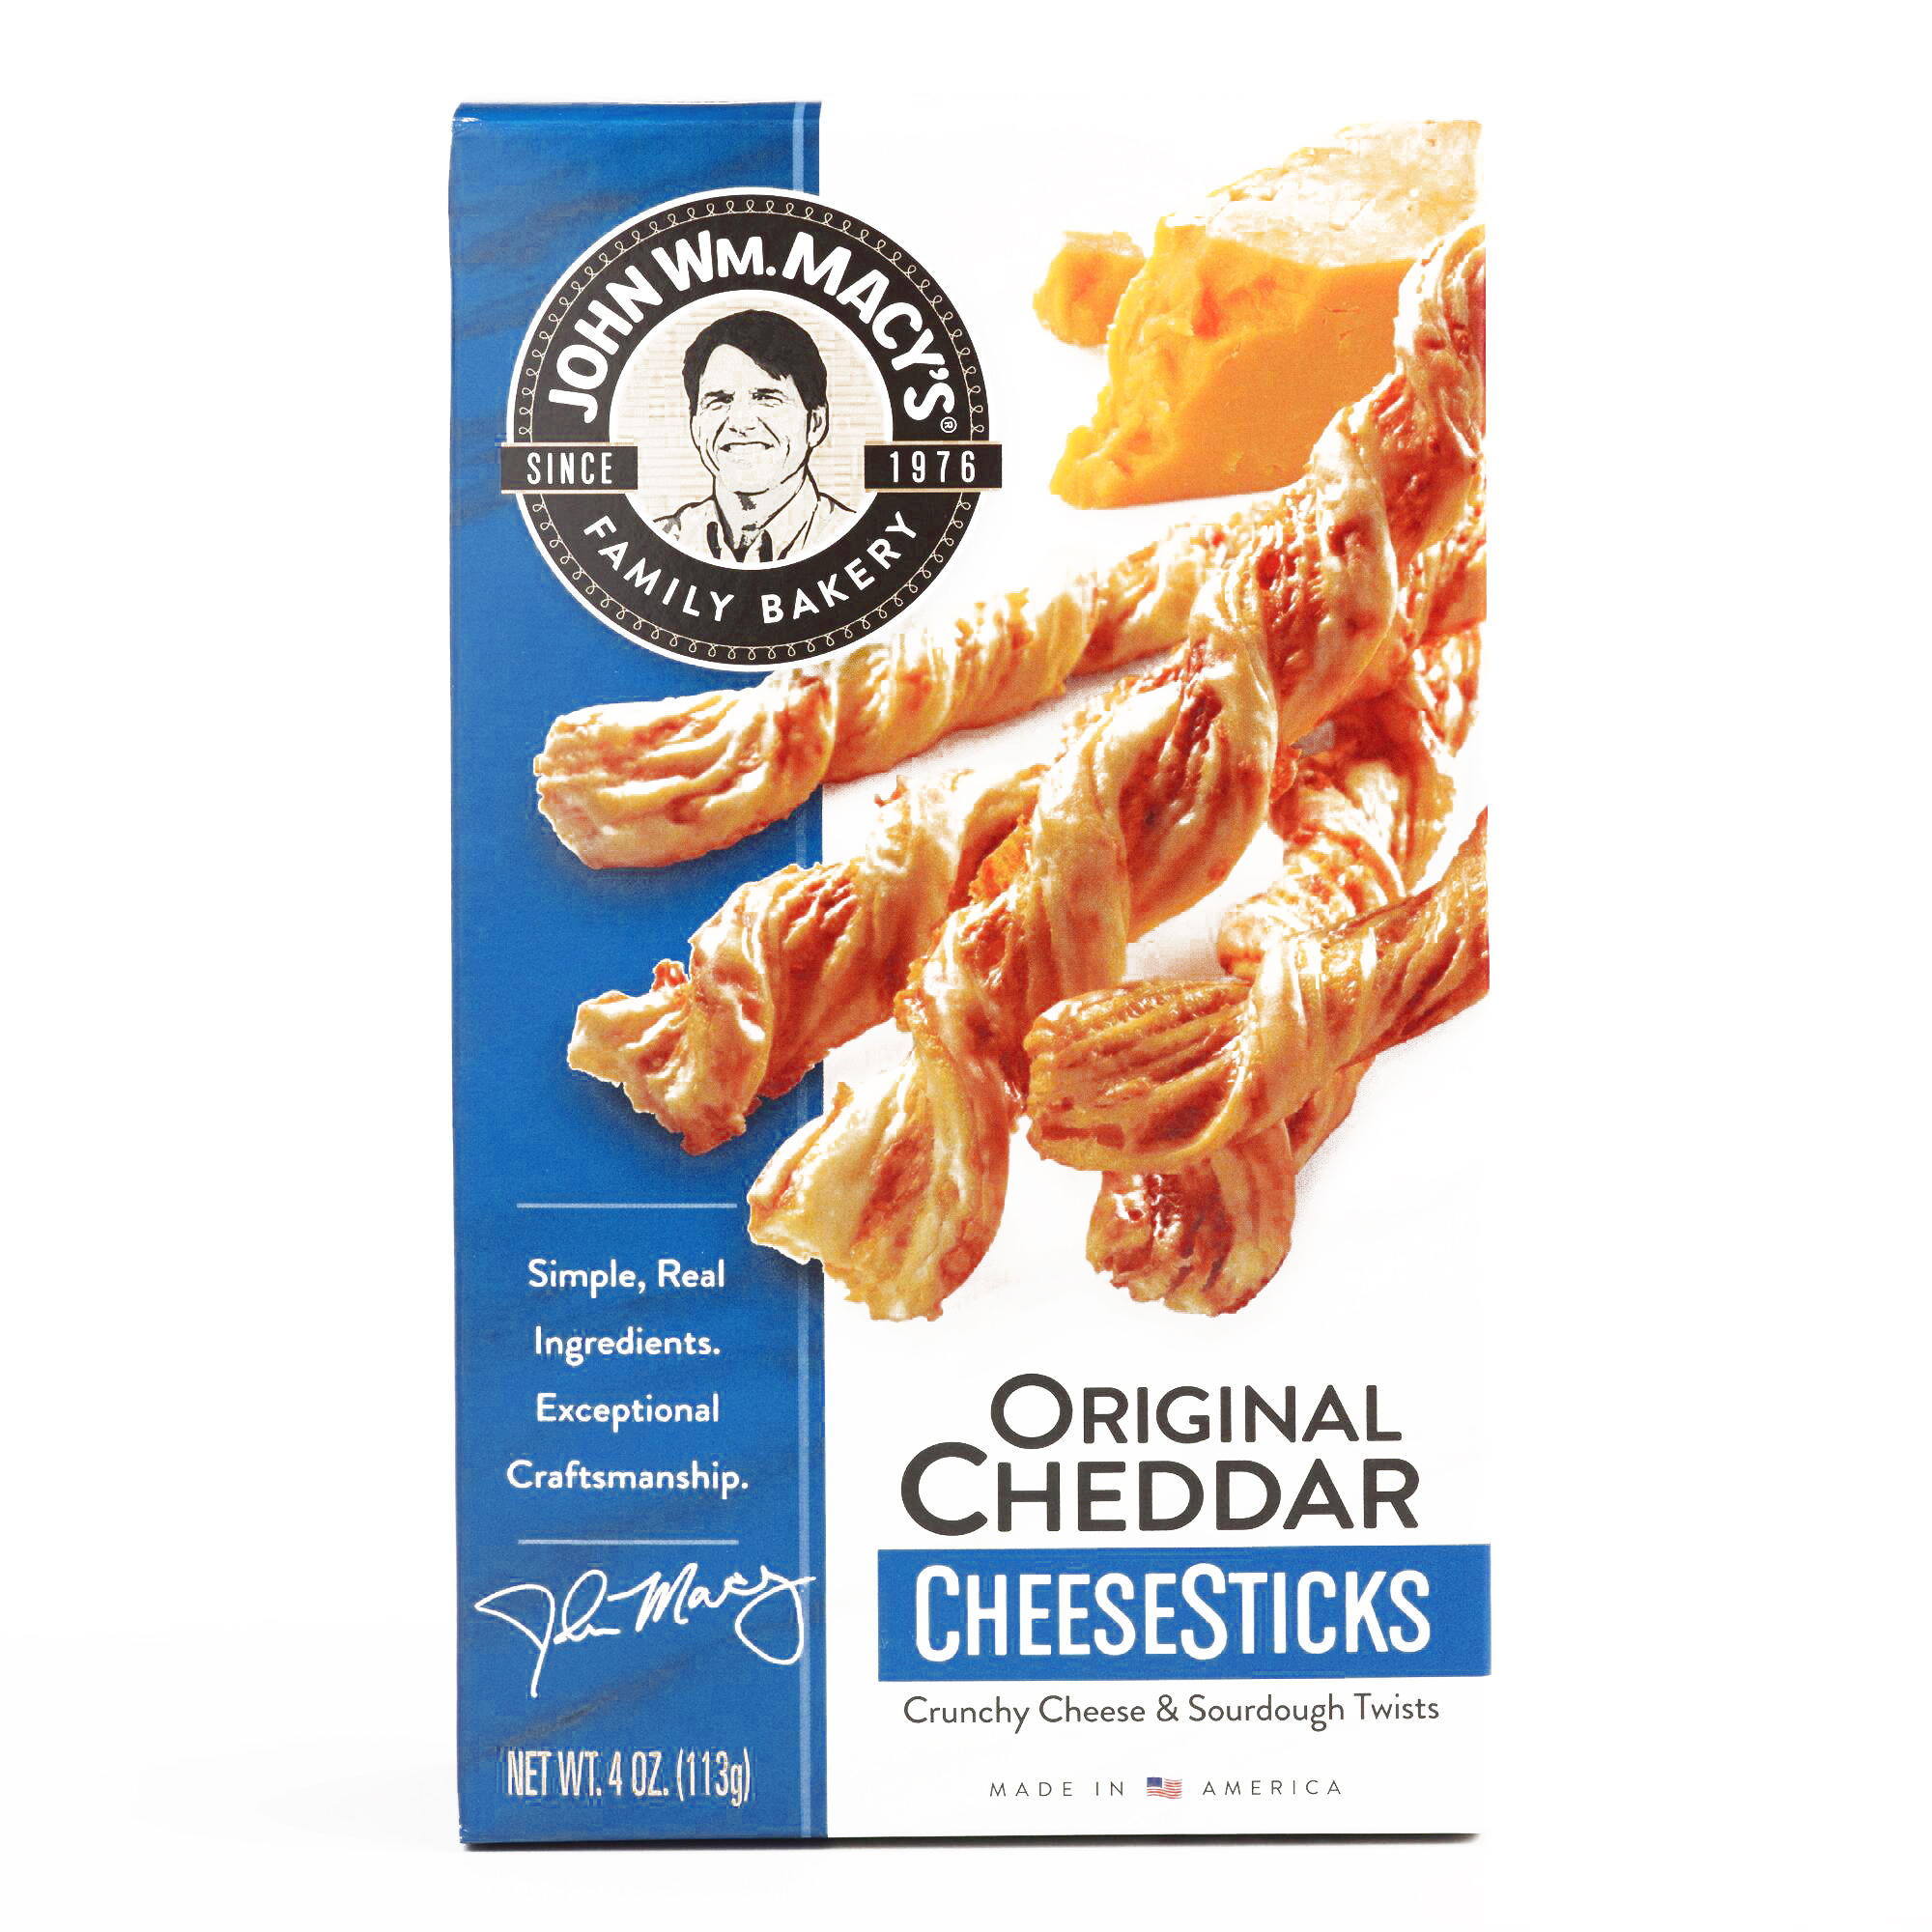 Macy's Cheddar Cheese Sticks \t4 oz each (1 Item Per Order, not per case) by